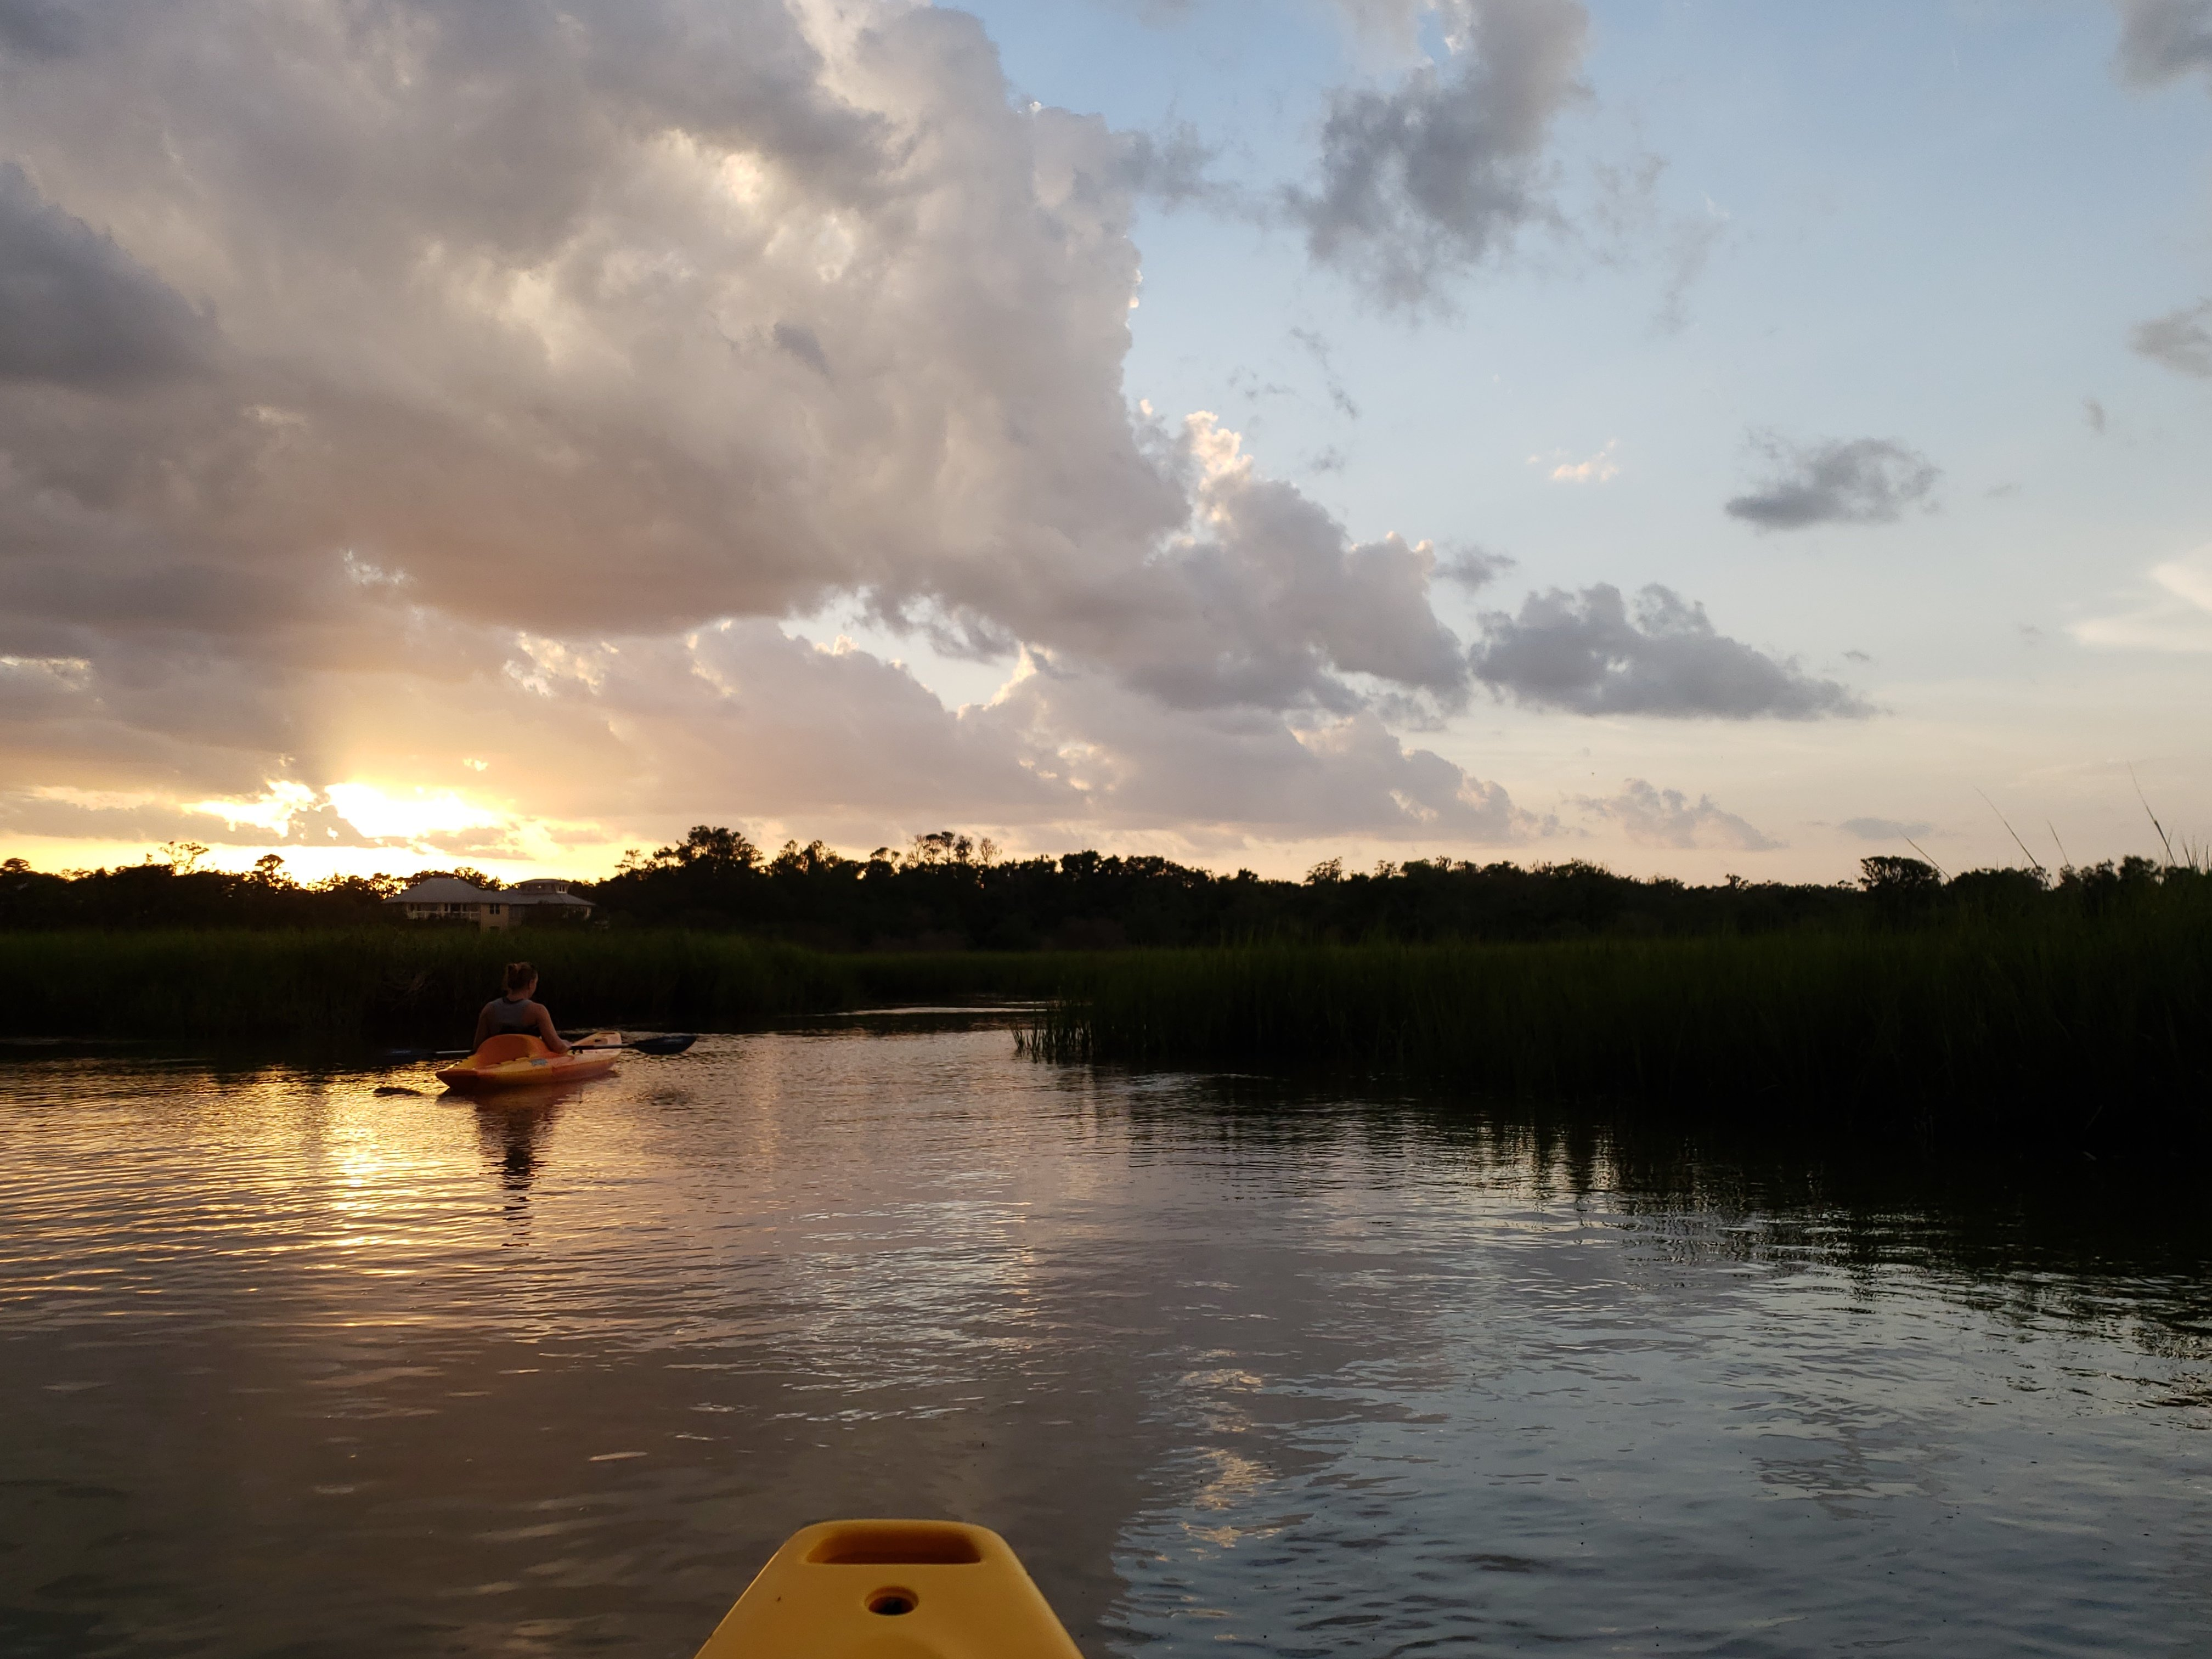 A sunset ecotour in a kayak on Village Creek, St. Simons Island